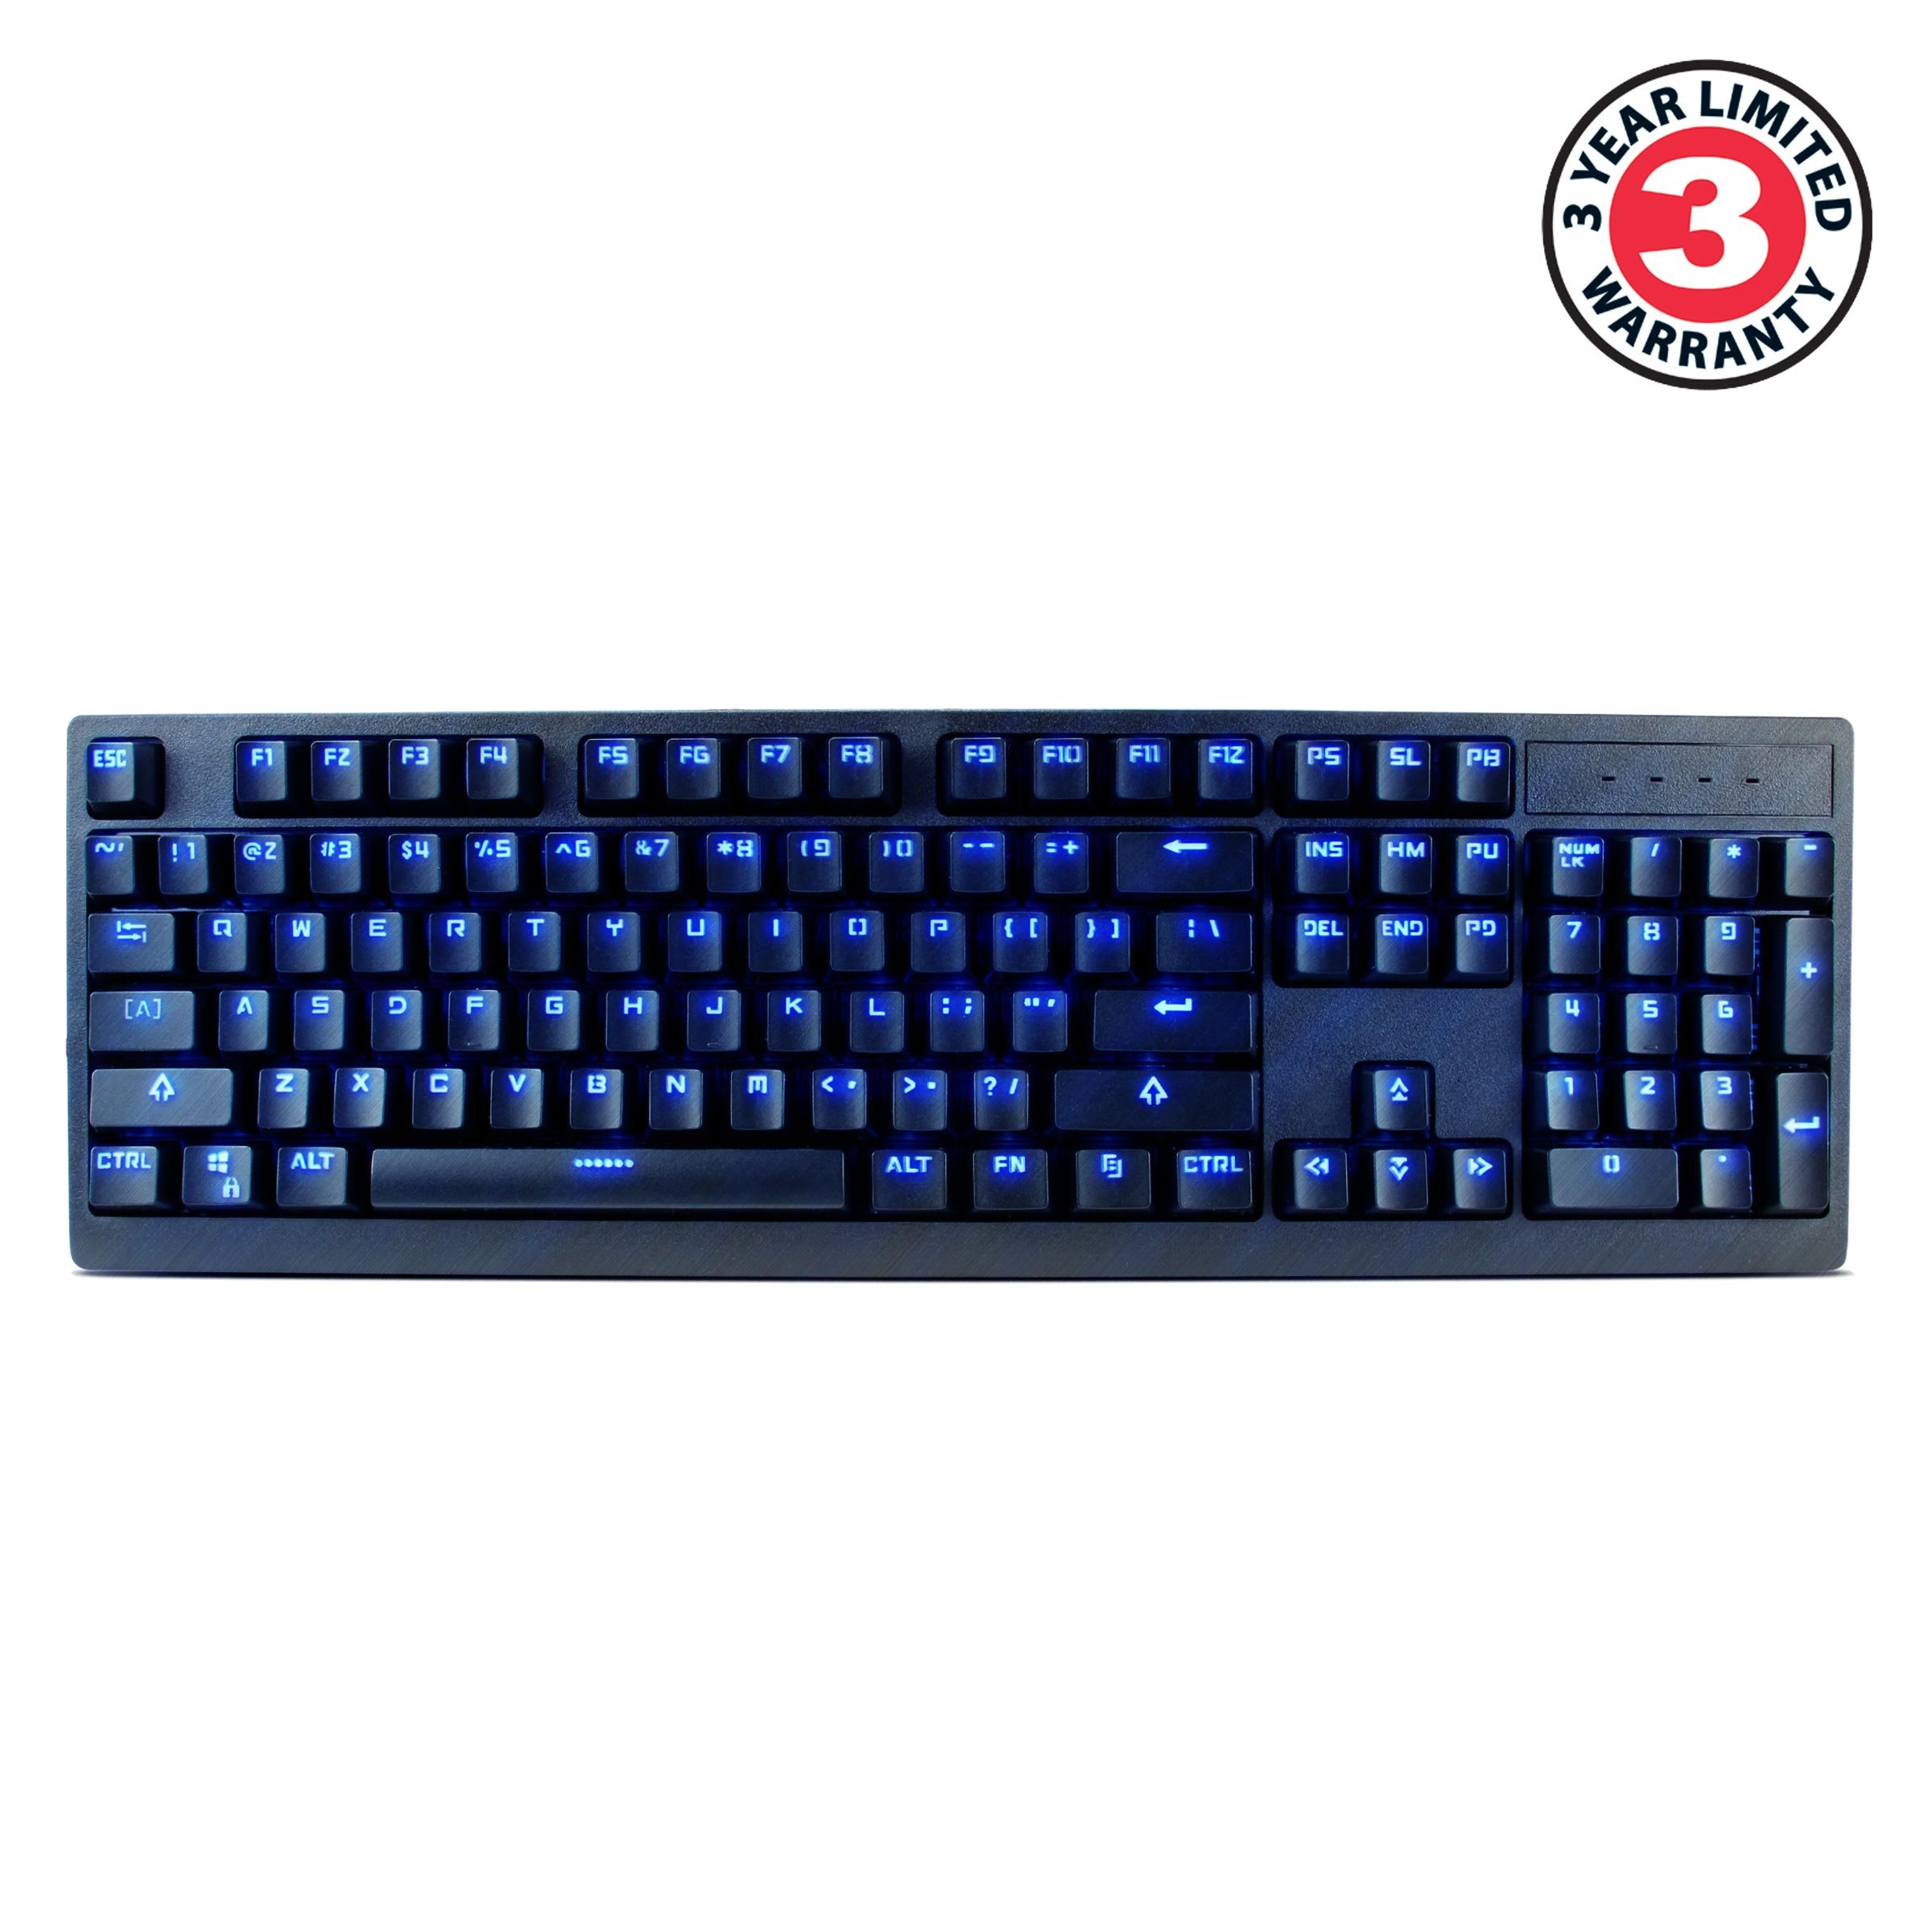 ENHANCE GX-K5 FPS Mechanical Gaming Keyboard with Blue LED Backlighting & TTC Brown Tactile Switches – Great for Counter-Strike: Global Offensive , Overwatch , Call of Duty: Black Ops III & More Games by ENHANCE (Image #2)